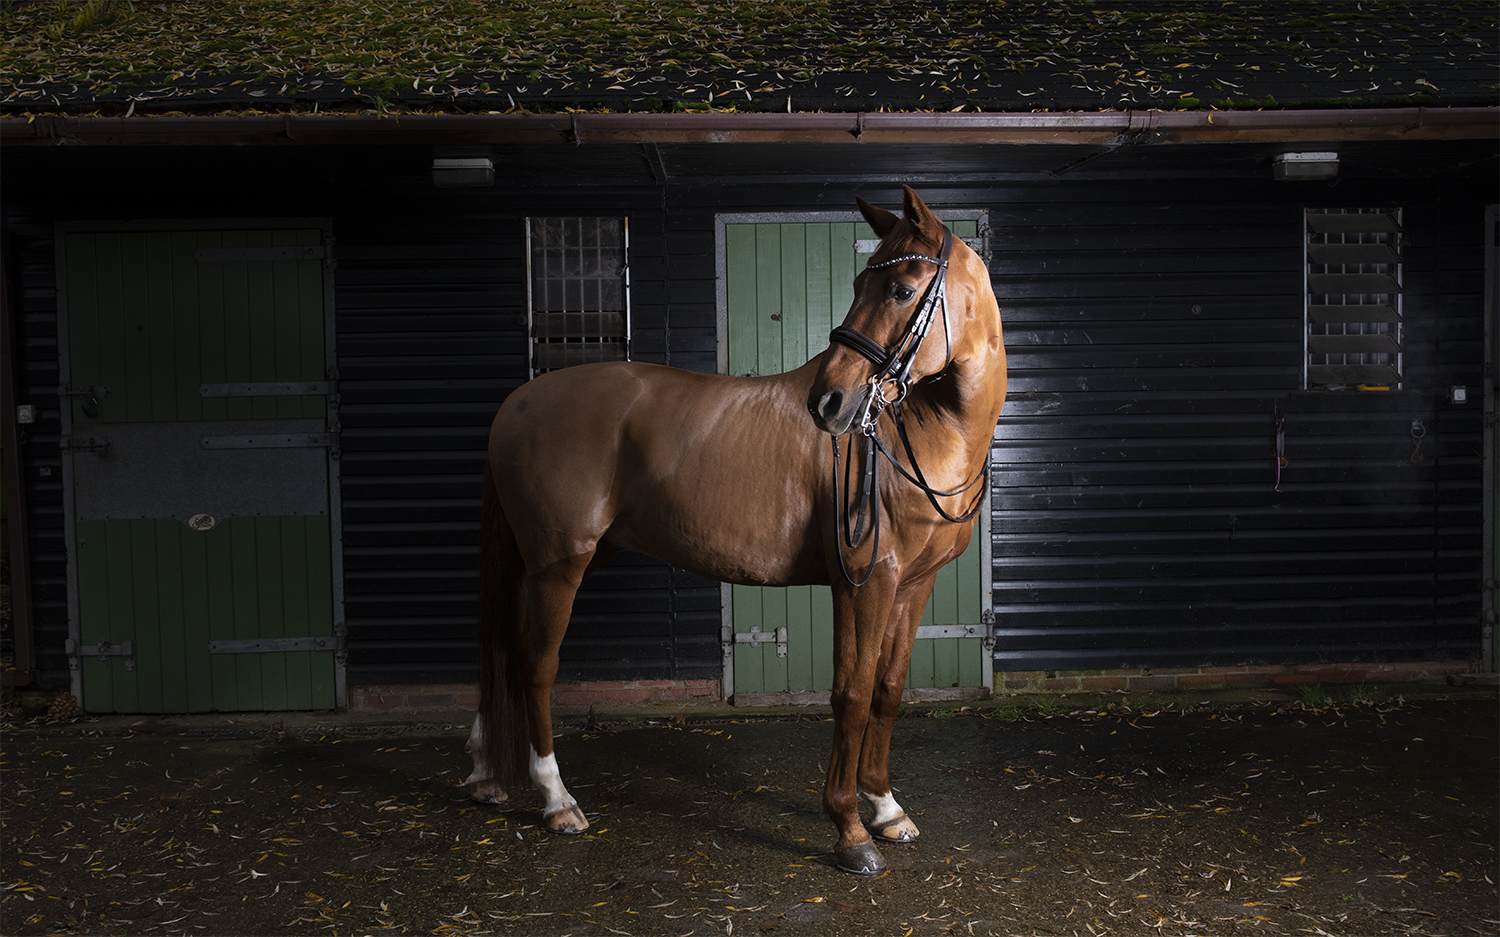 evie_lewis_chestnut_stables_small.jpg